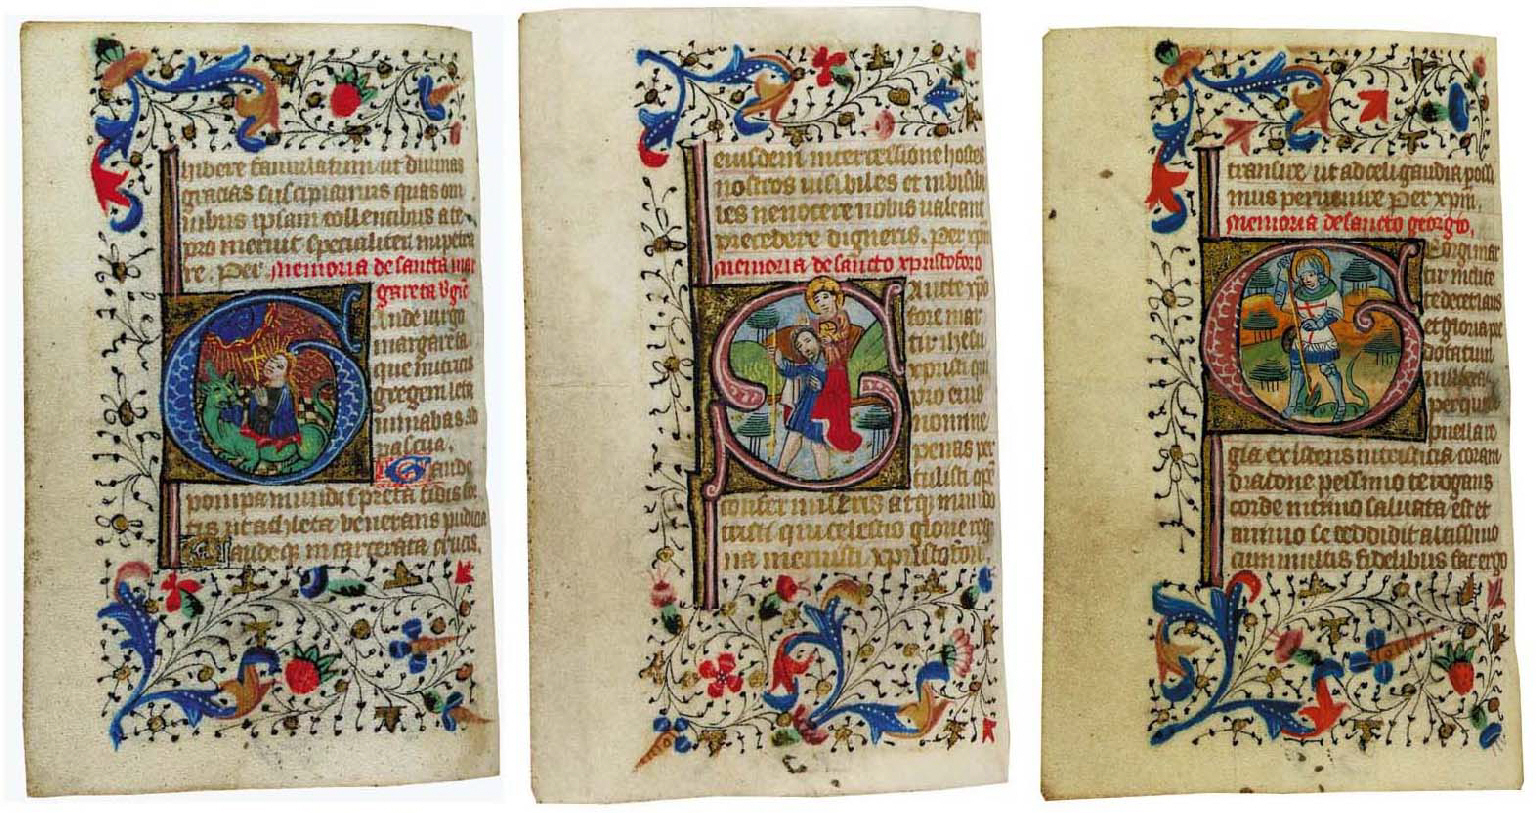 BOOK OF HOURS, use of Sarum in